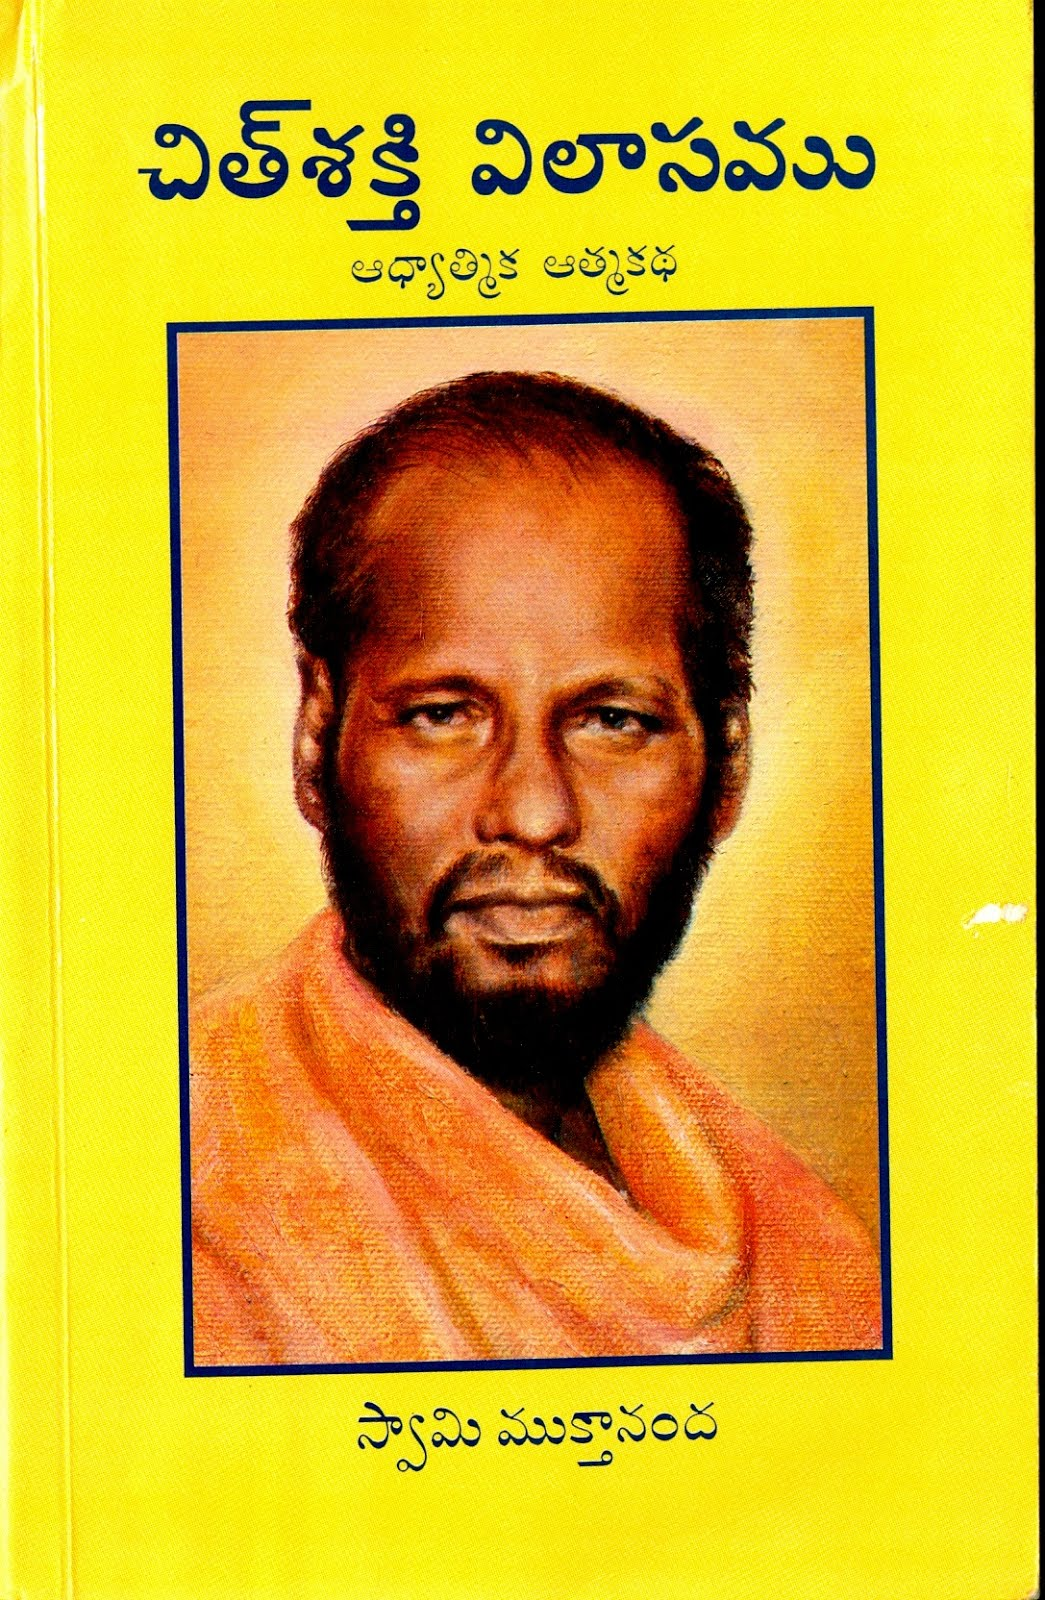 CHITH SHAKTHI VILASAMU